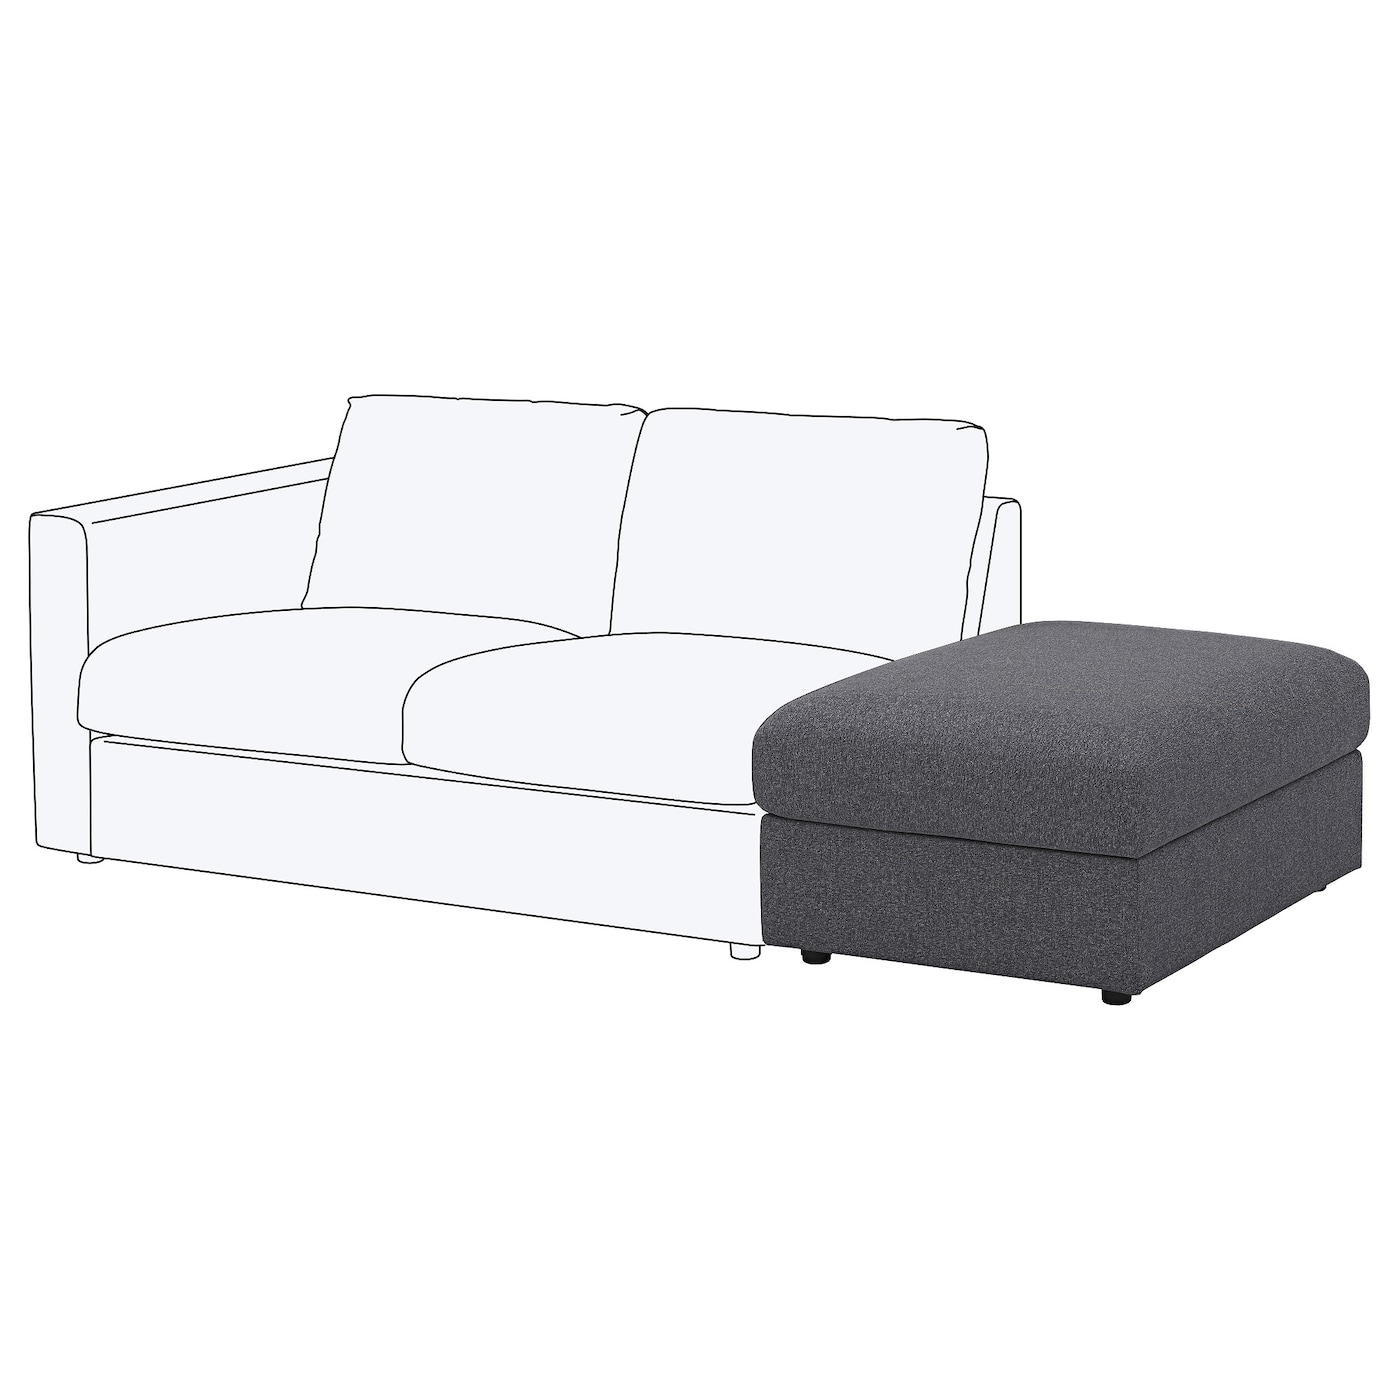 IKEA VIMLE footstool with storage 10 year guarantee. Read about the terms in the guarantee brochure.